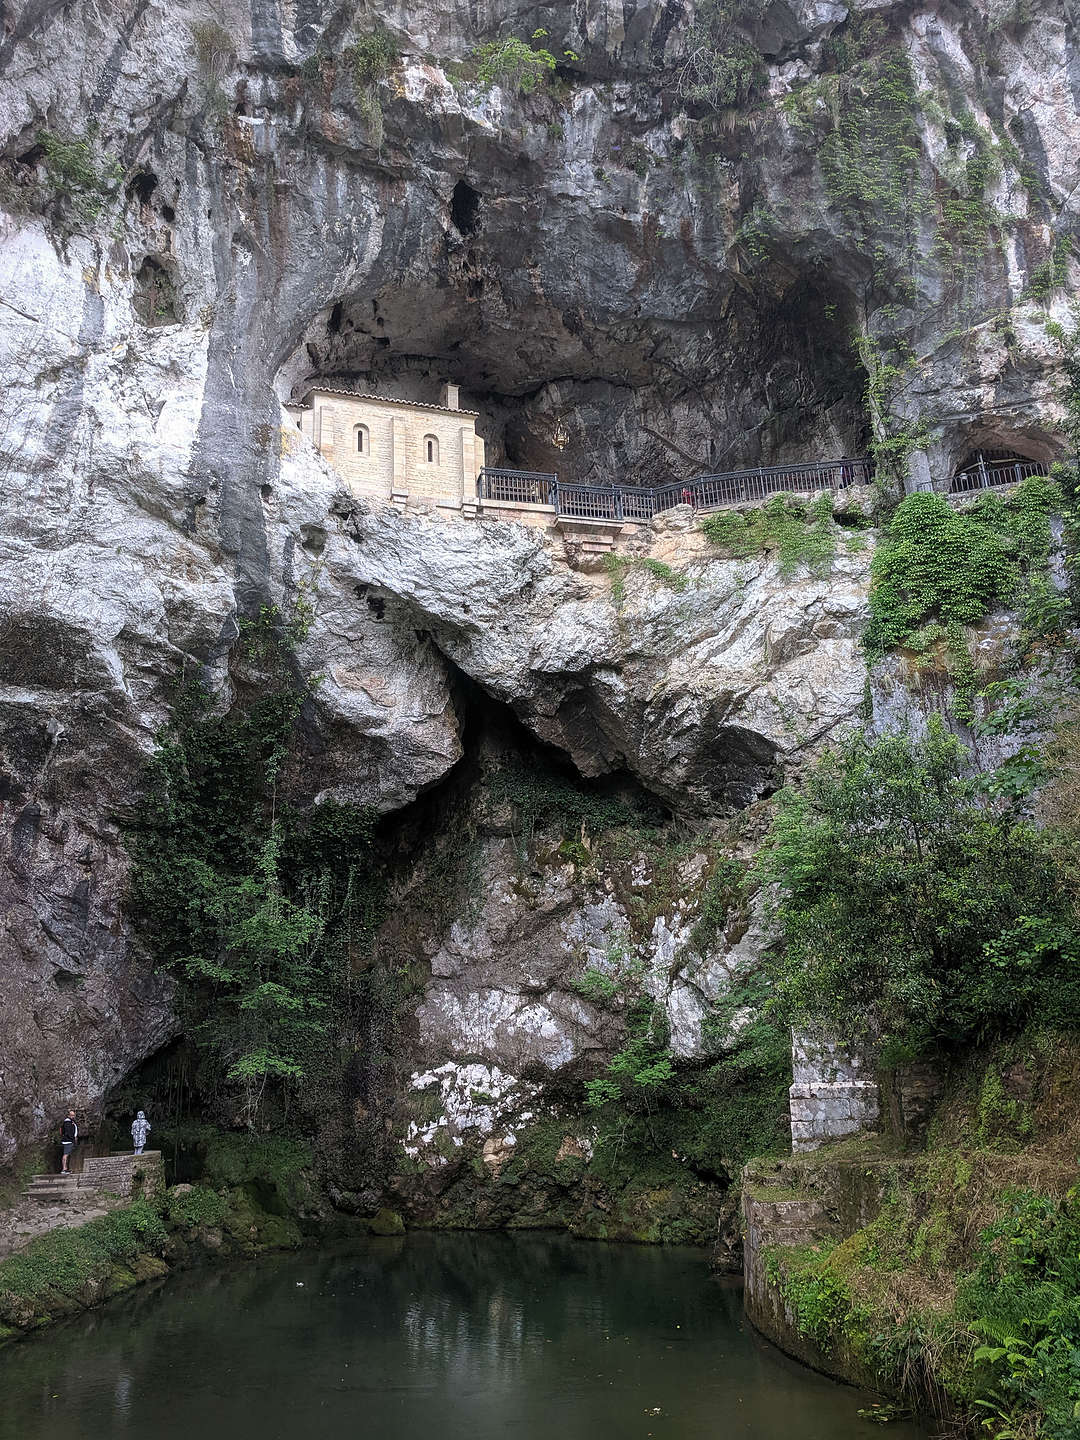 Santa Cueva, a hillside cave where, according to legend, the Virgin Mary appeared in 722 AD